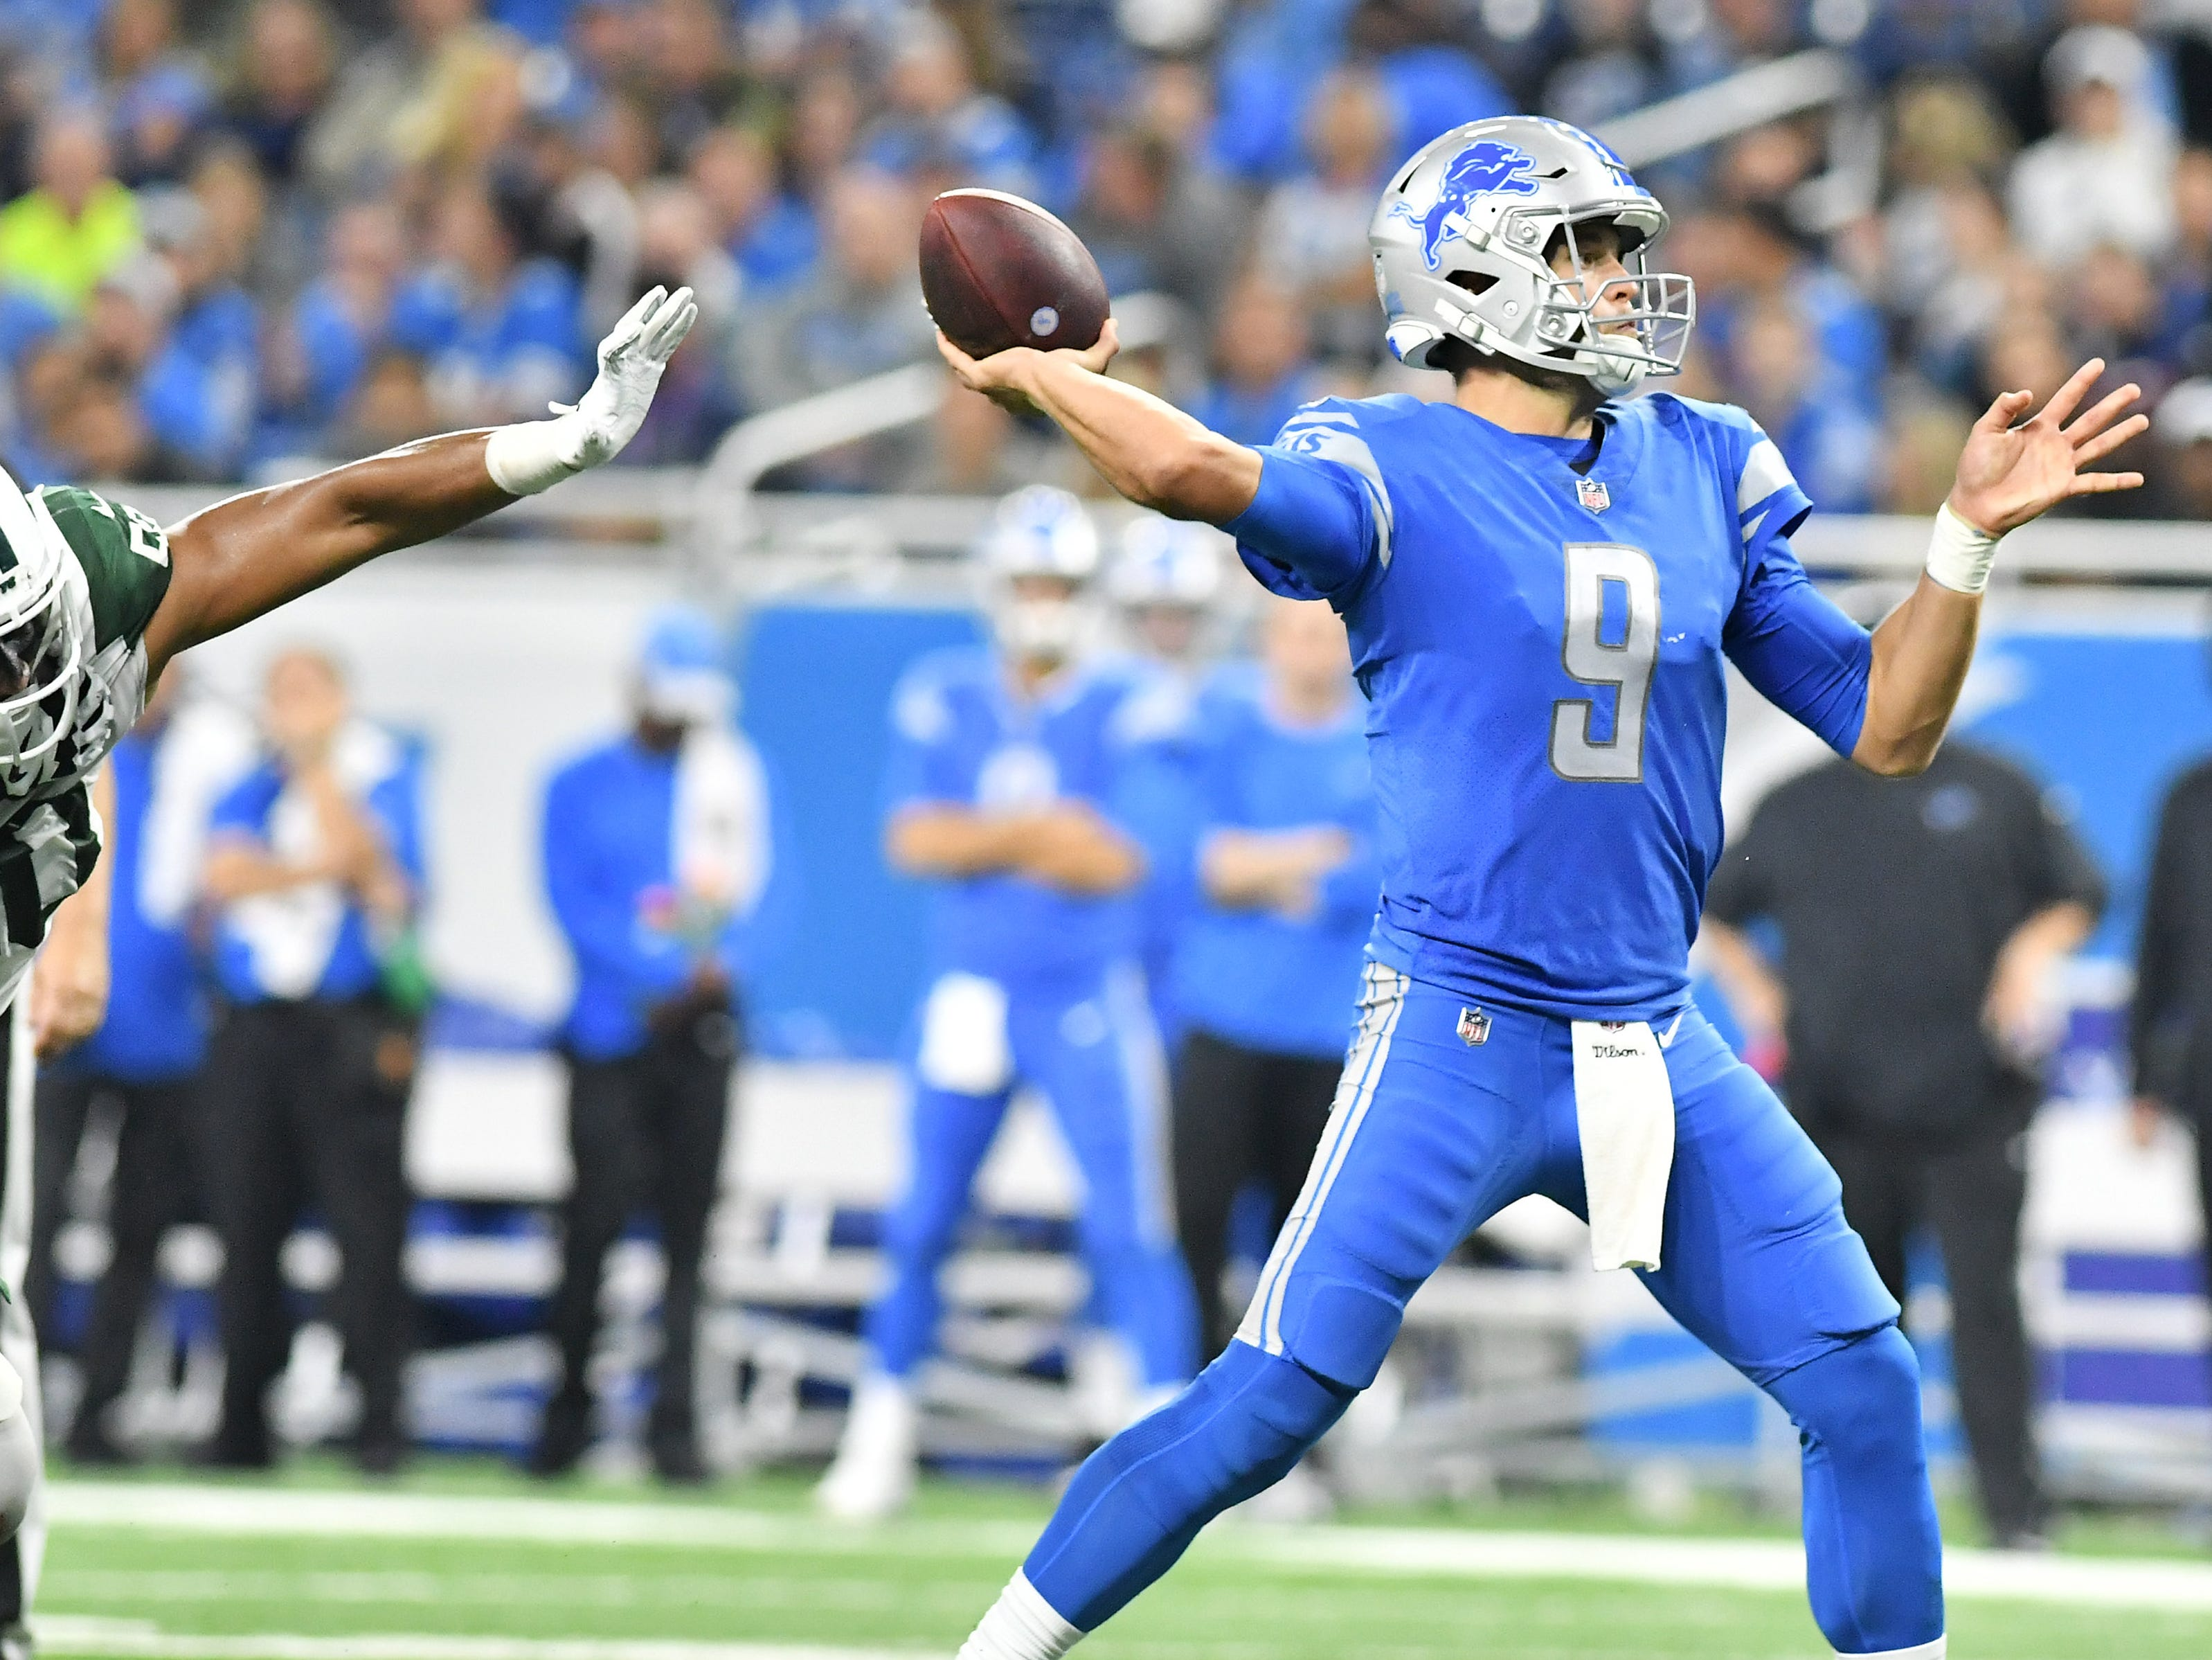 Lions quarterback Matthew Stafford passes the ball in the fourth quarter.